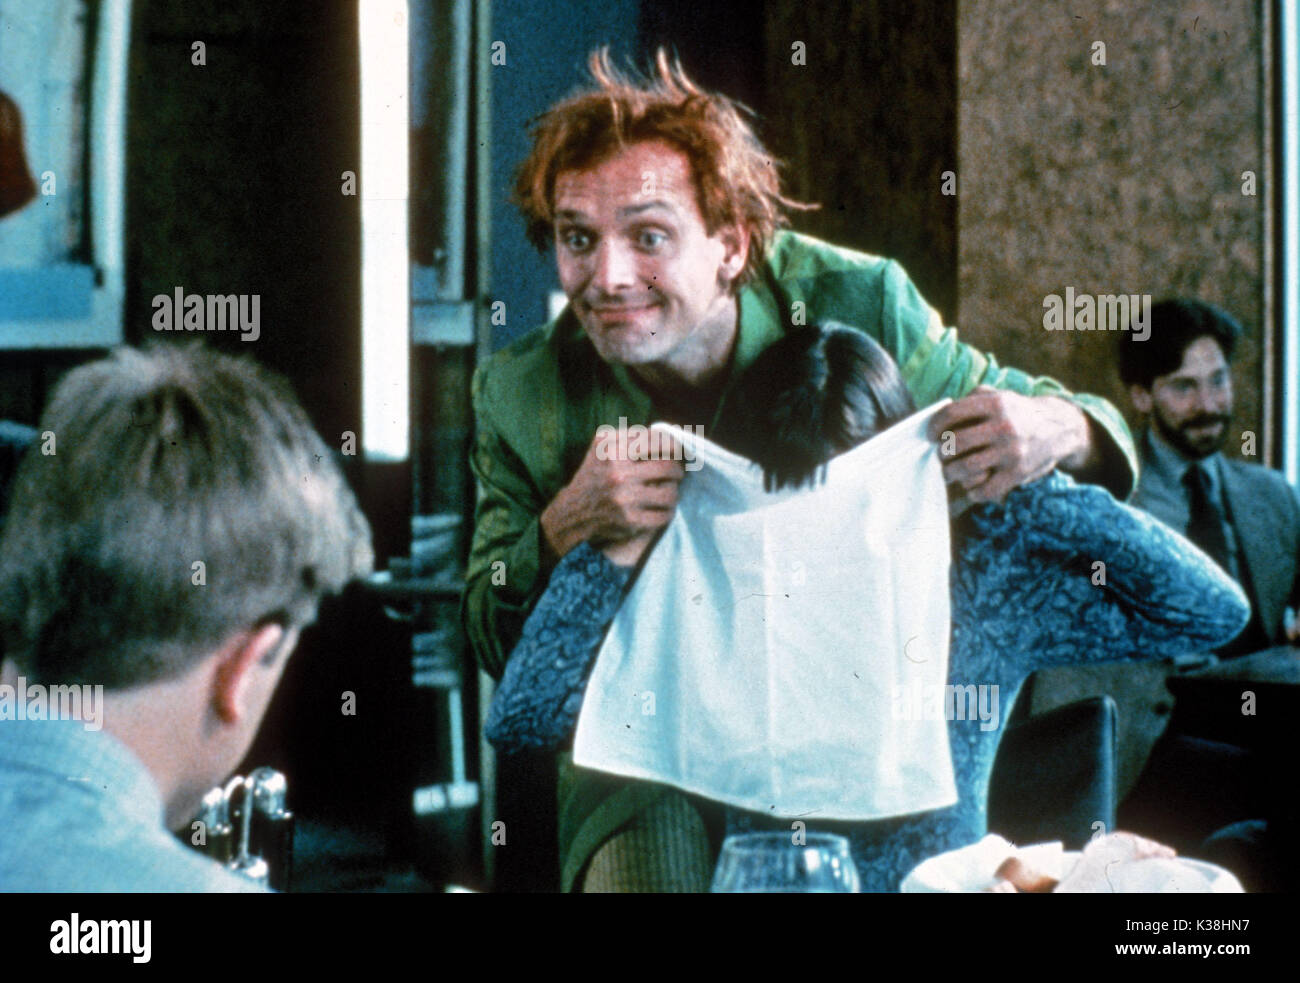 drop dead fred download free movie